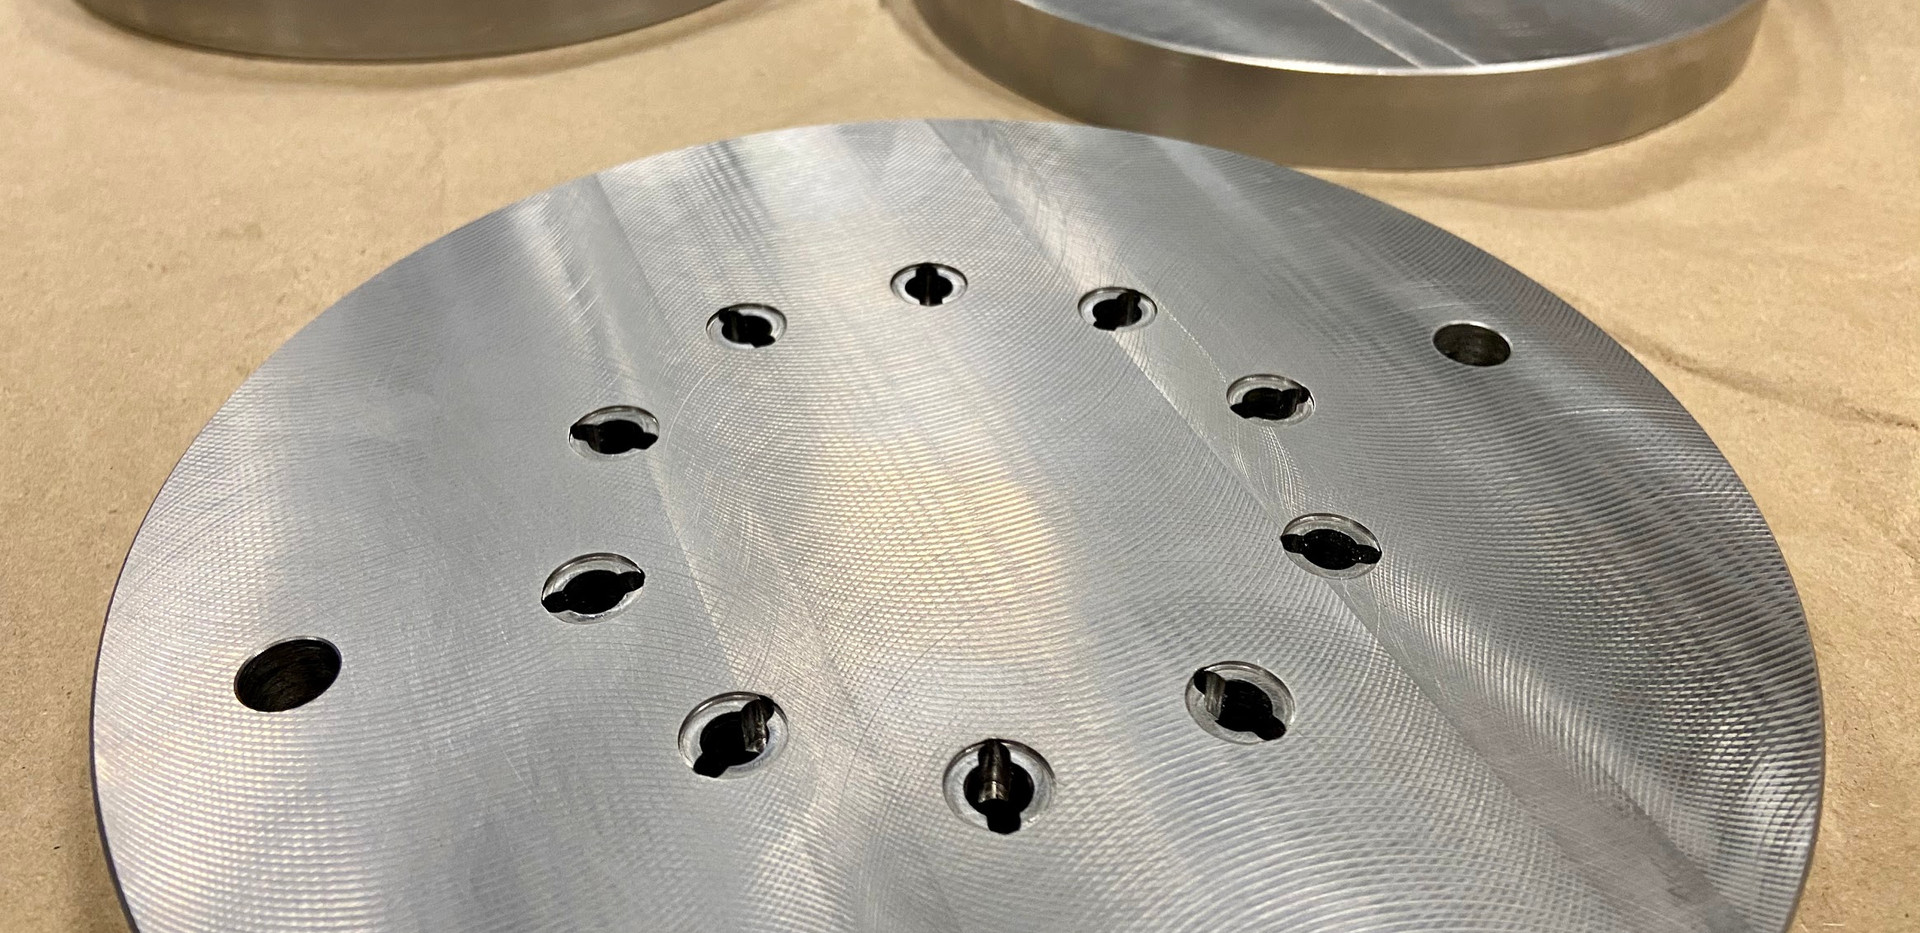 Extrusion tooling